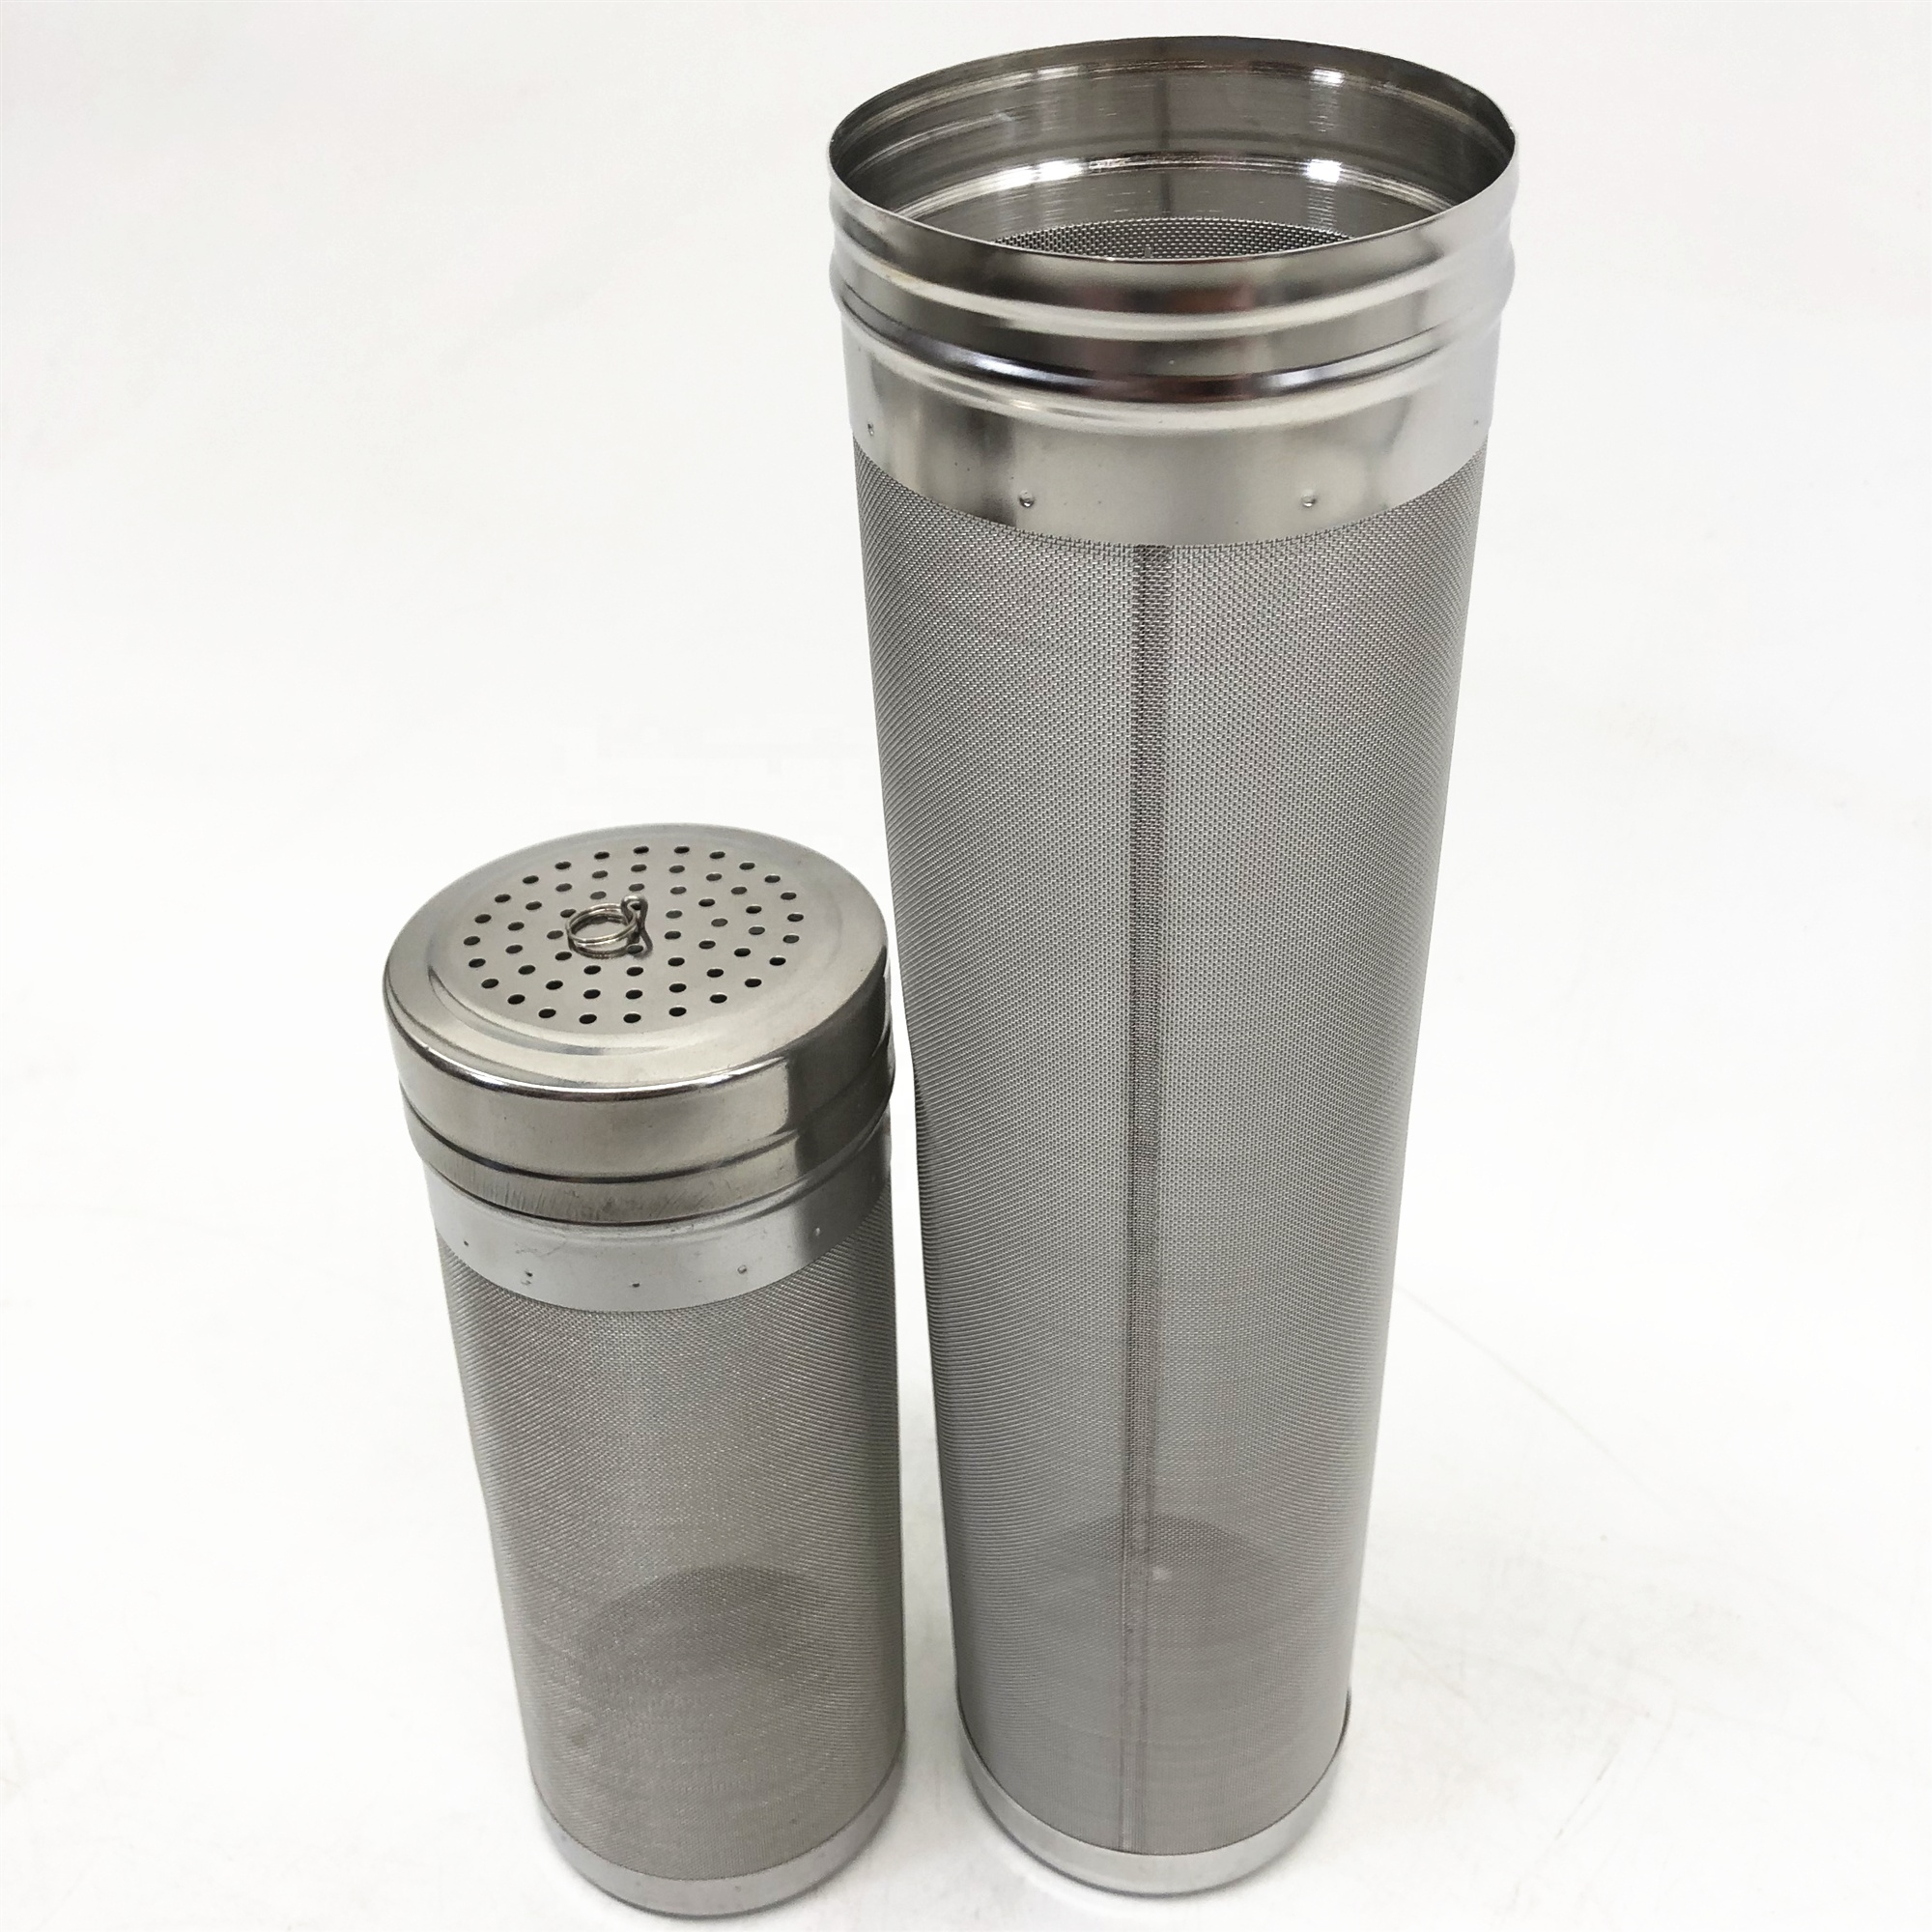 Direct <strong>manufacturer</strong> supply 7cmX30cm stainless steel mesh basket strainer beer